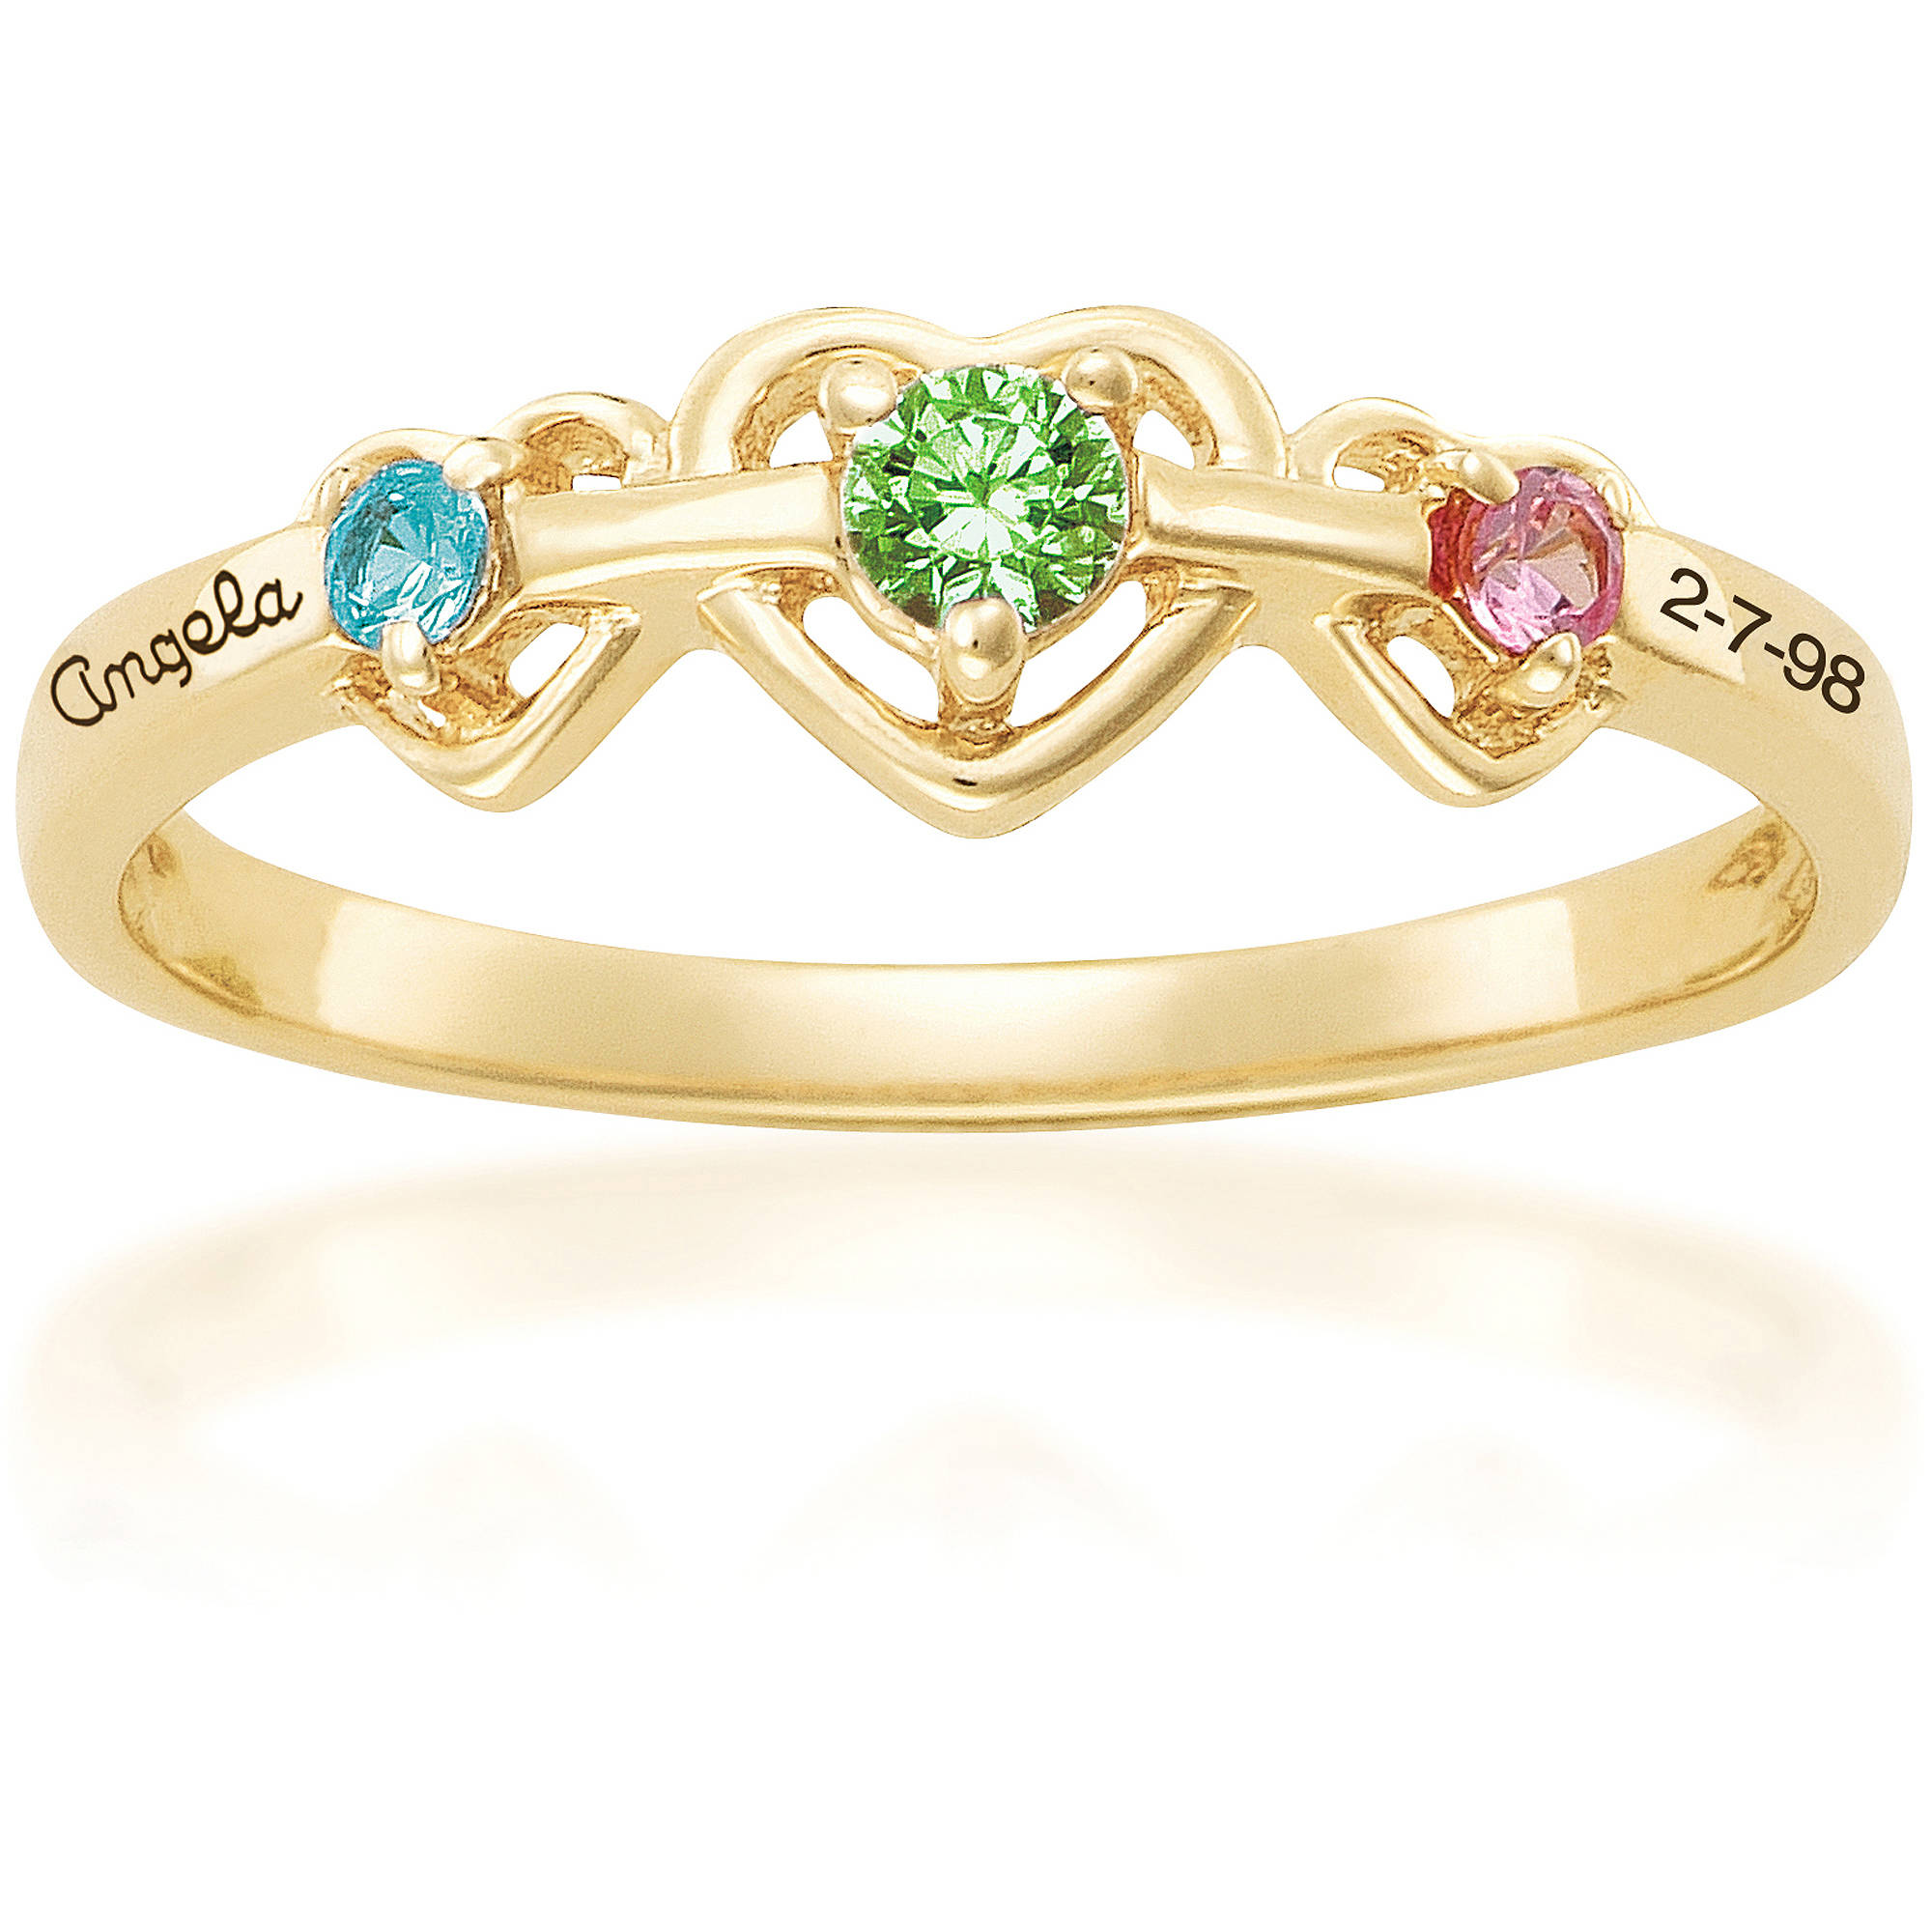 Keepsake Personalized Triple Heart Mother's Birthstone Ring available in 10kt Gold Plate, 10kt Gold and 14kt Gold